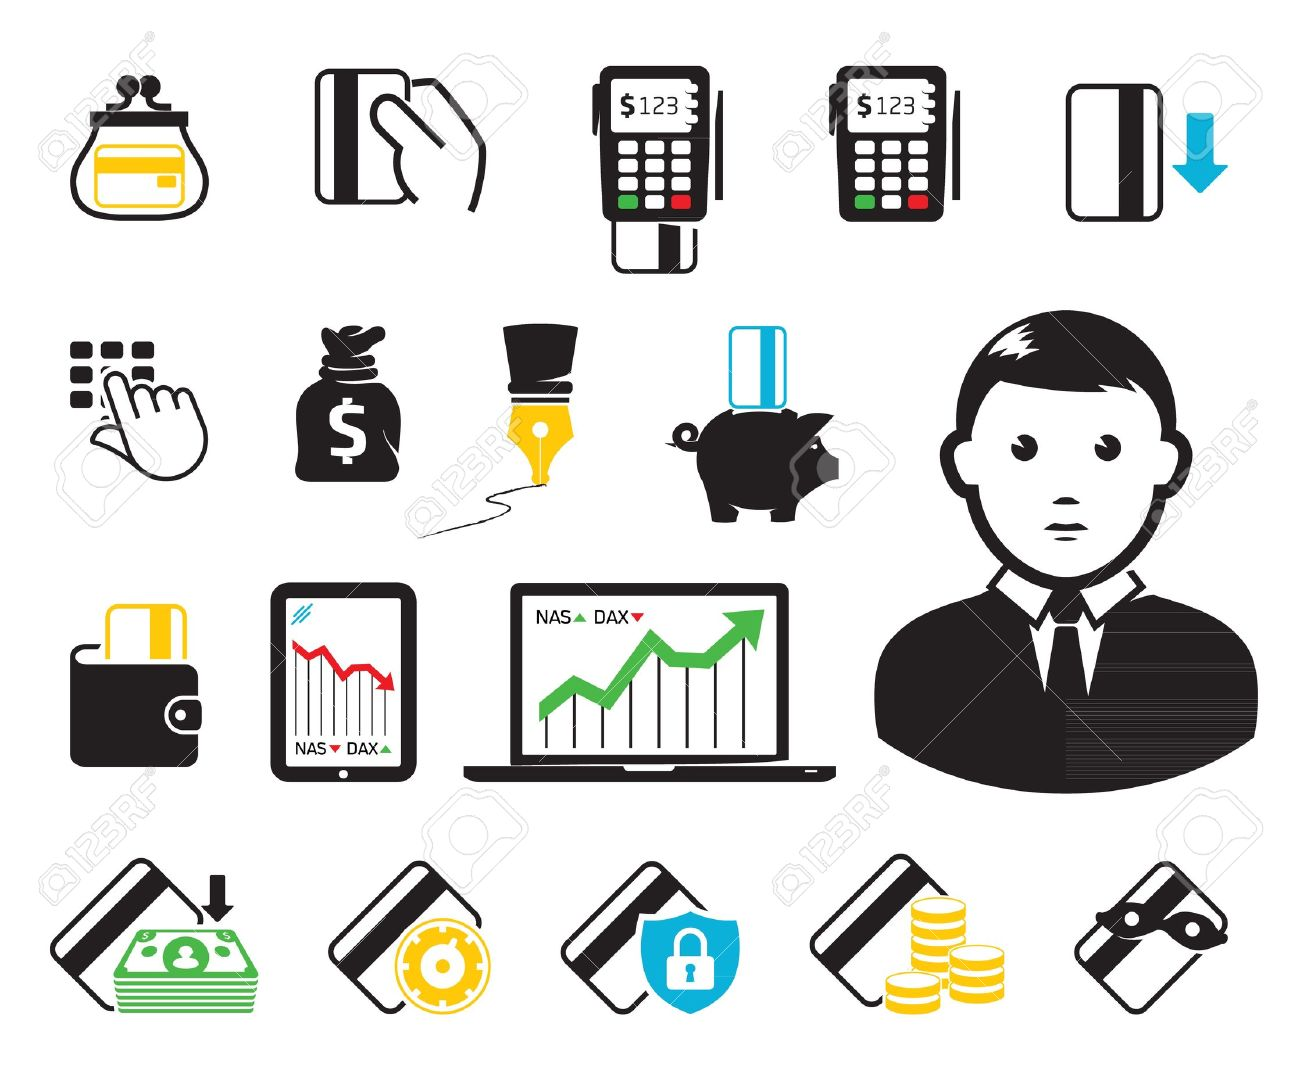 POS-terminal and credit card icons - 12711042